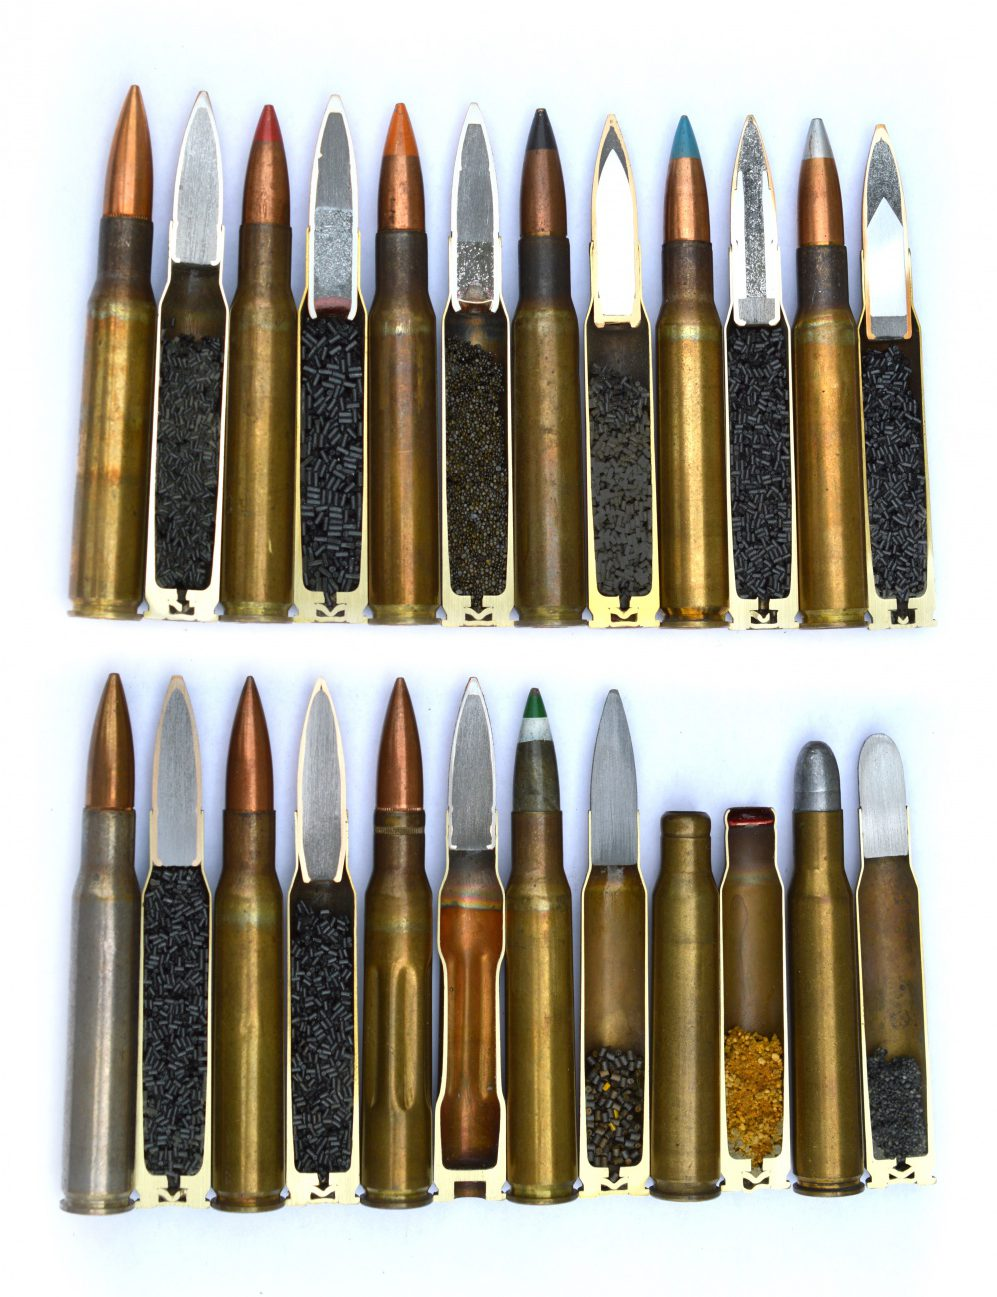 What Is a Caliber System, and How Does It Affect Ammunition Design?